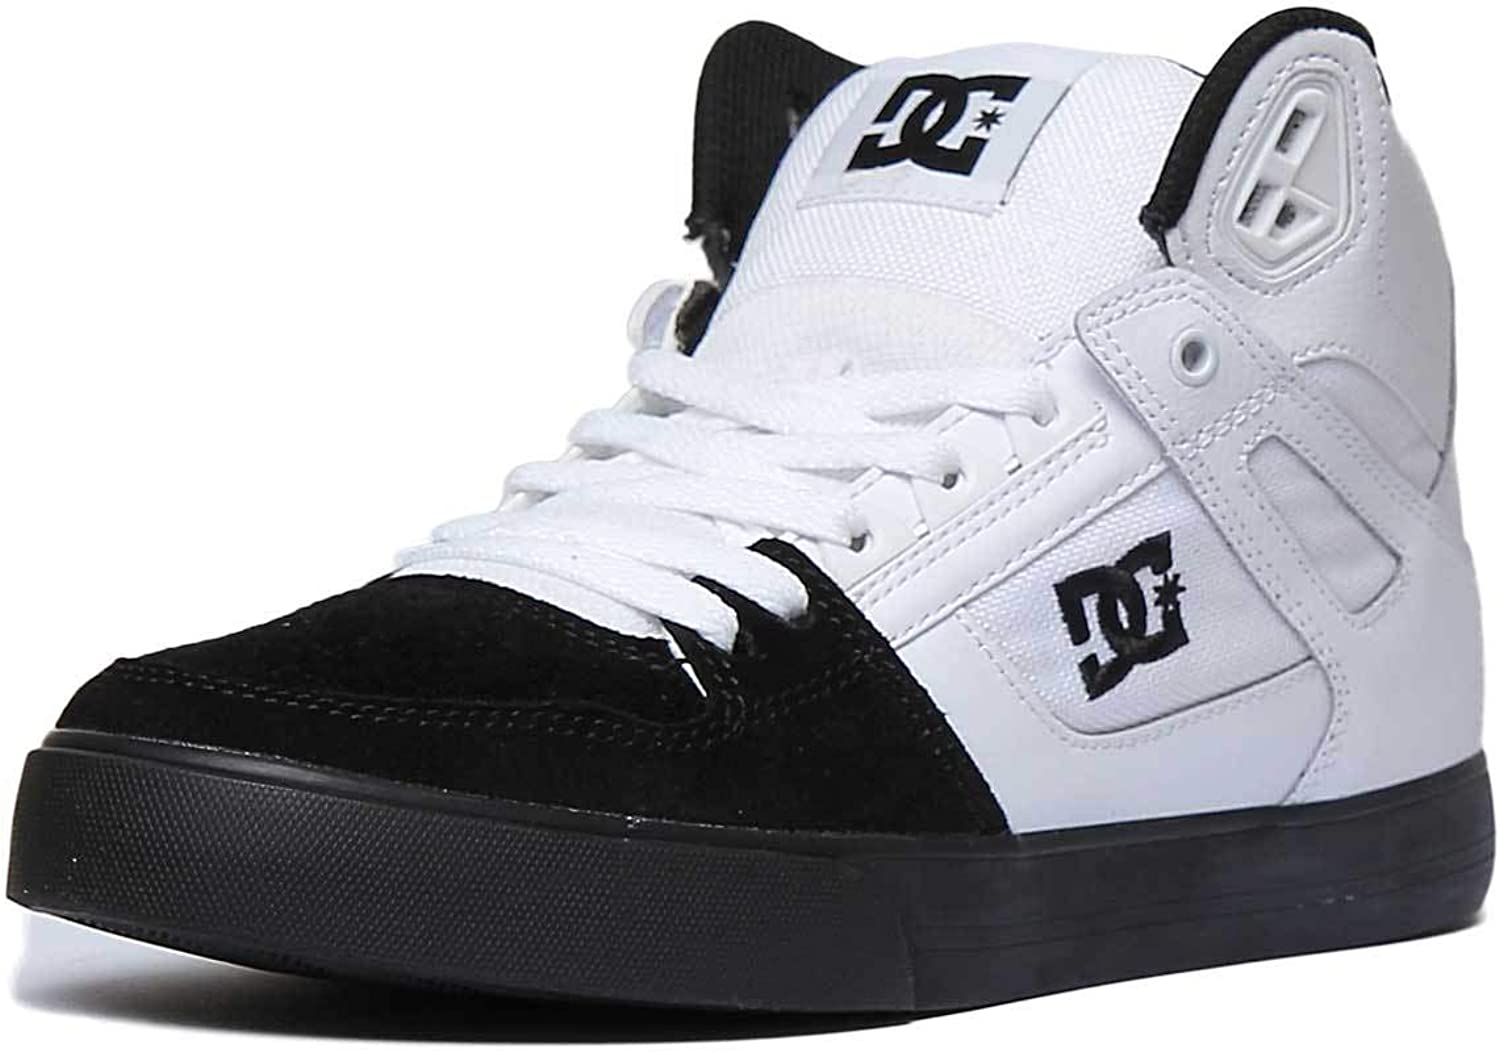 DC shoes Pure High Top Womens Leather Mesh Trainer in White Black